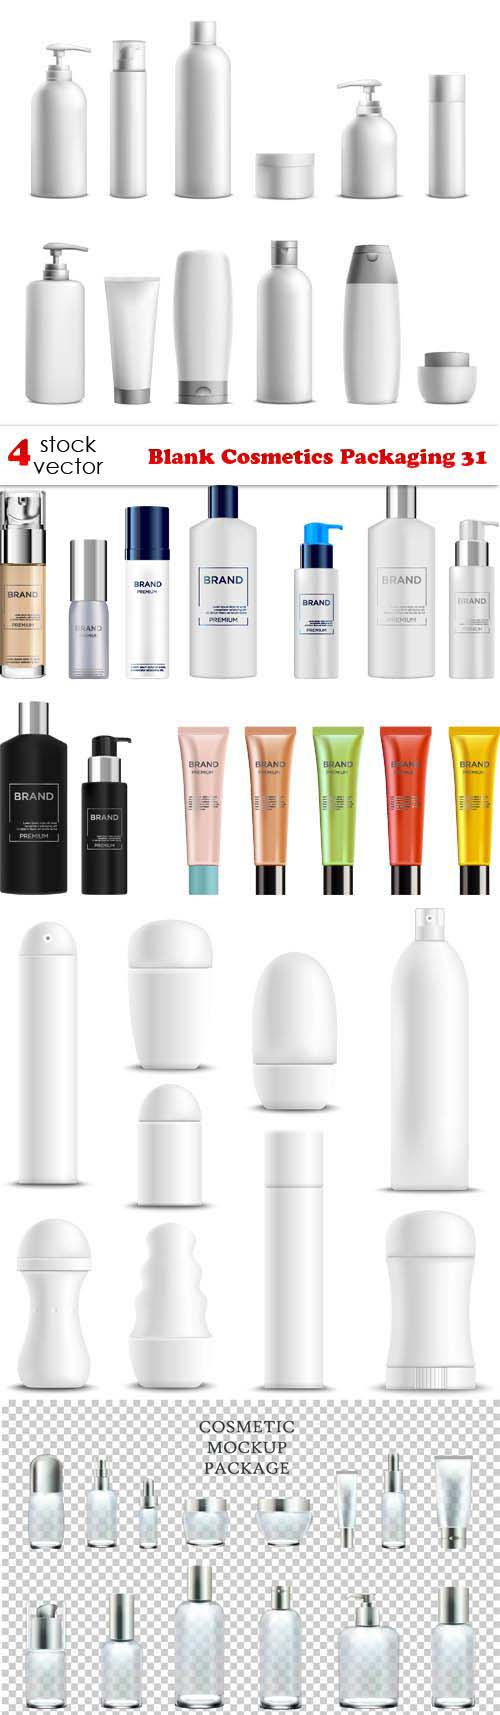 Blank Cosmetics Packaging 31